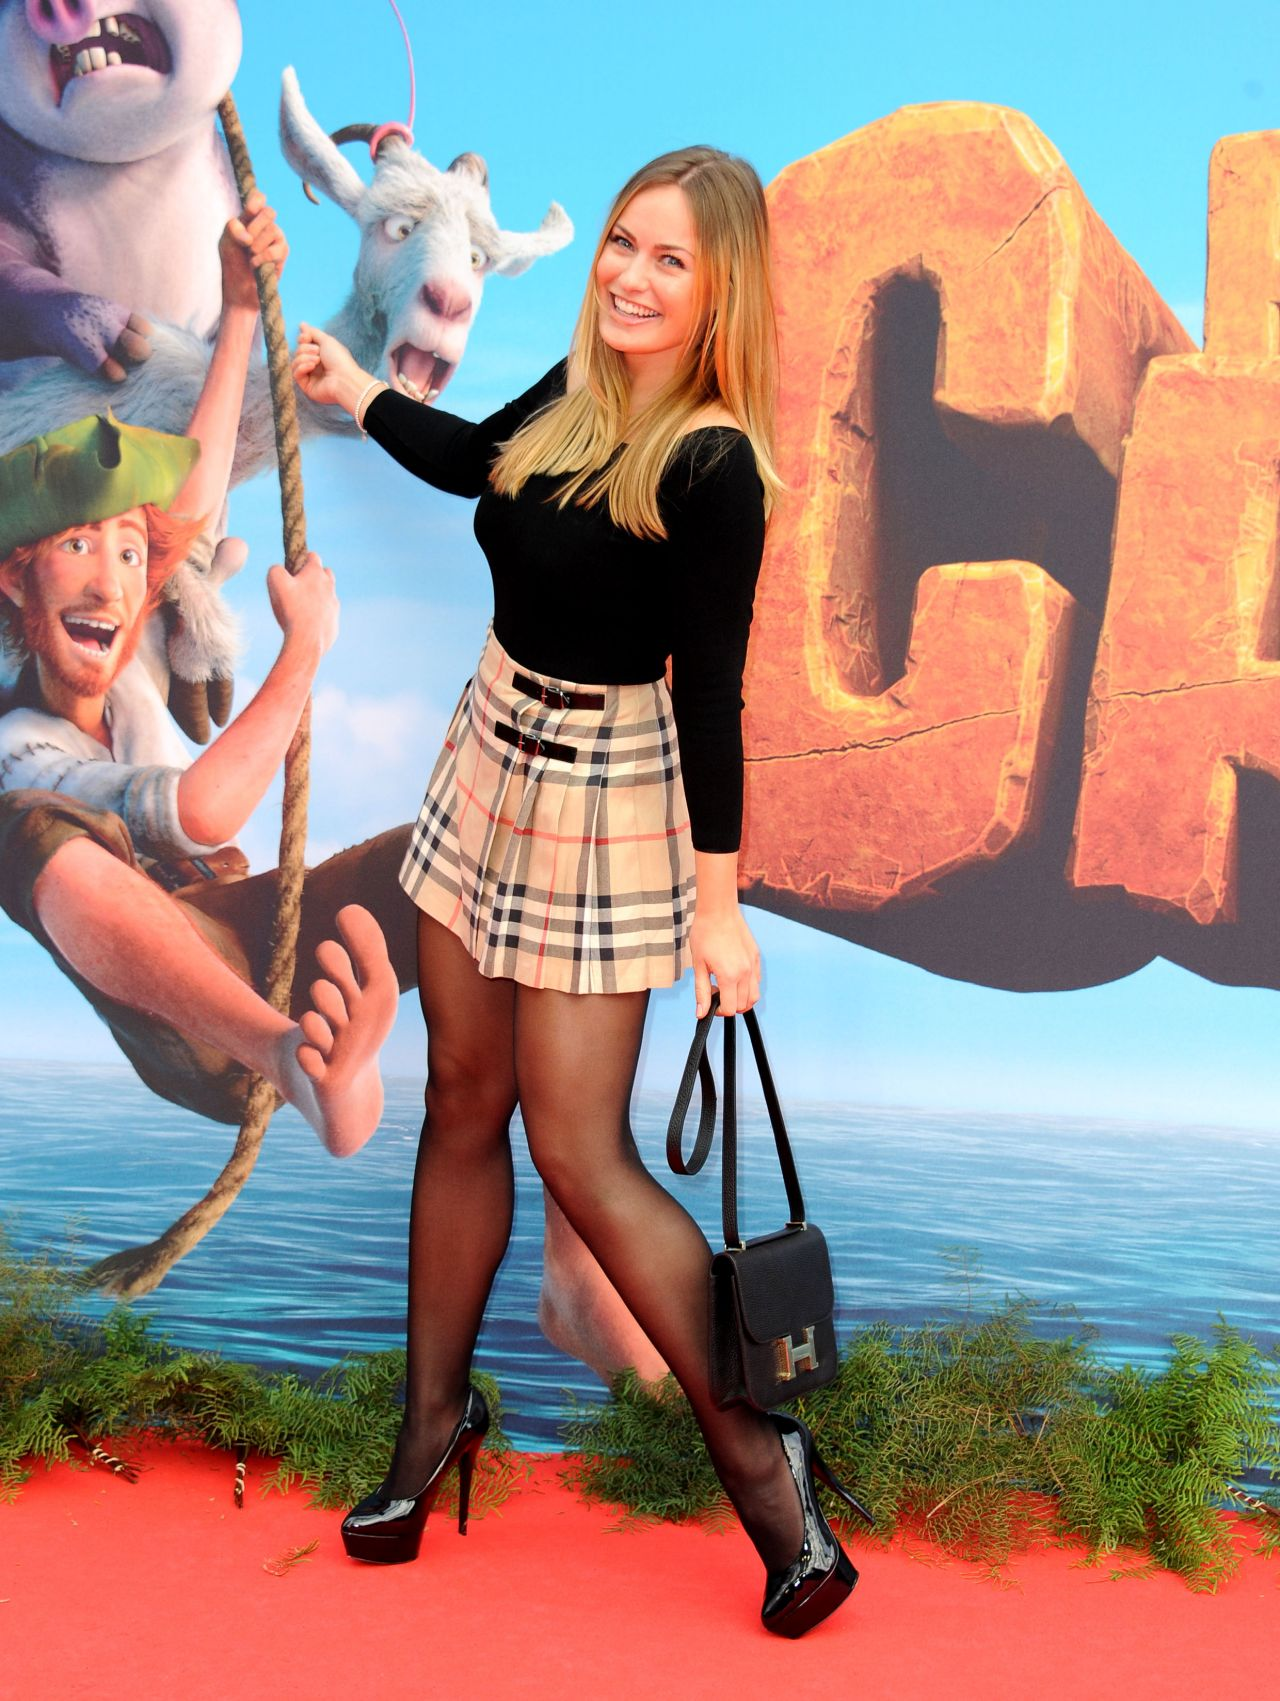 Anne Julia Hagen Robinson Crusoe Premiere At The Zoo